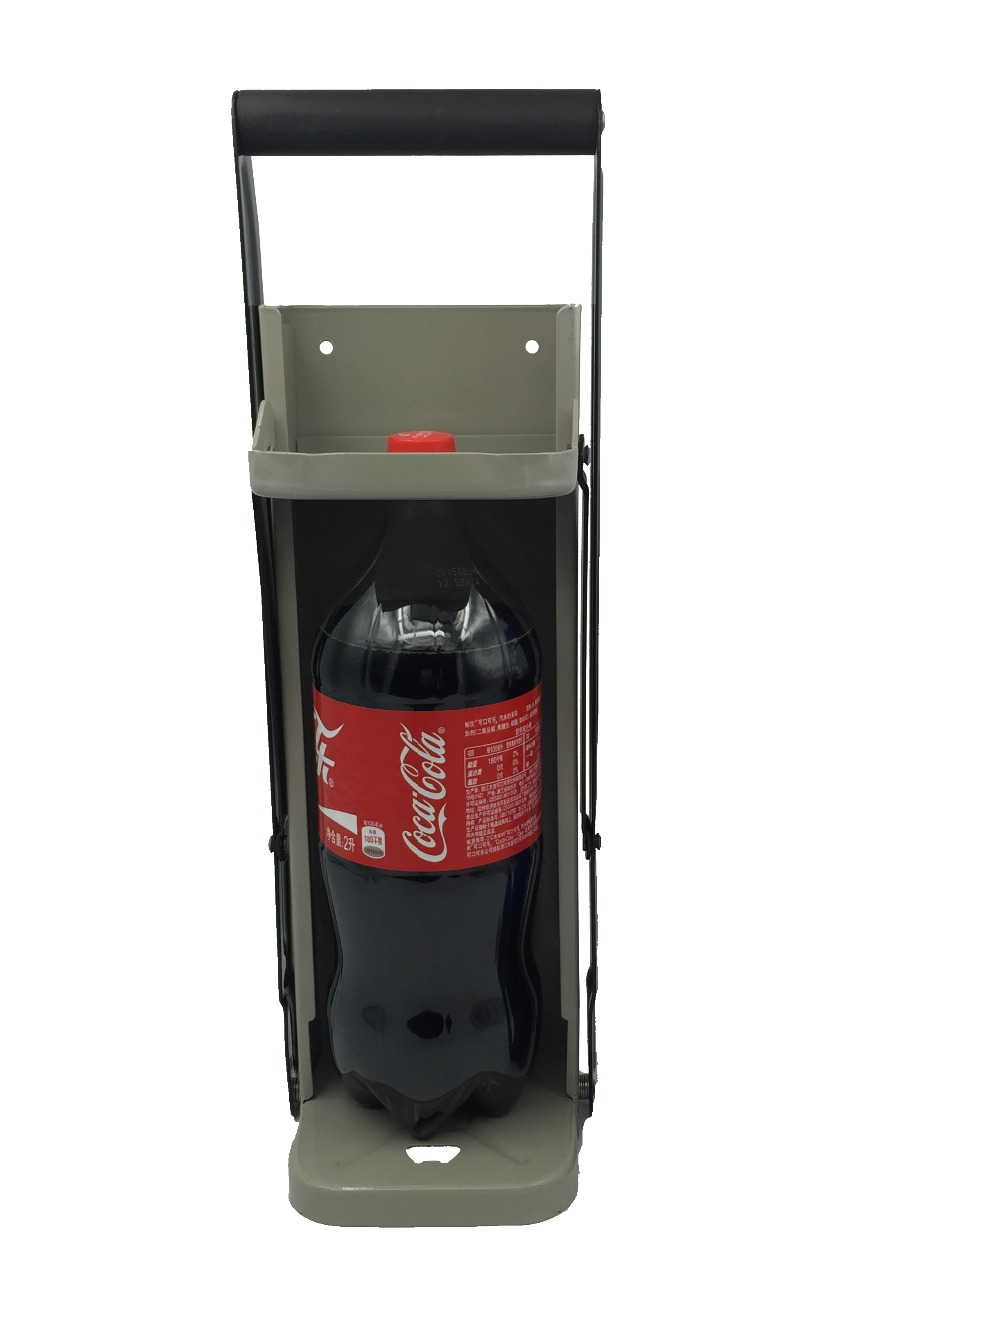 2.5L Big Bottle Crusher For 2.5L 1.5L And 500ml Bottle Crush Also Suitable For 16oz&12oz&8oz Cans Or Tins Use Large Can Crusher